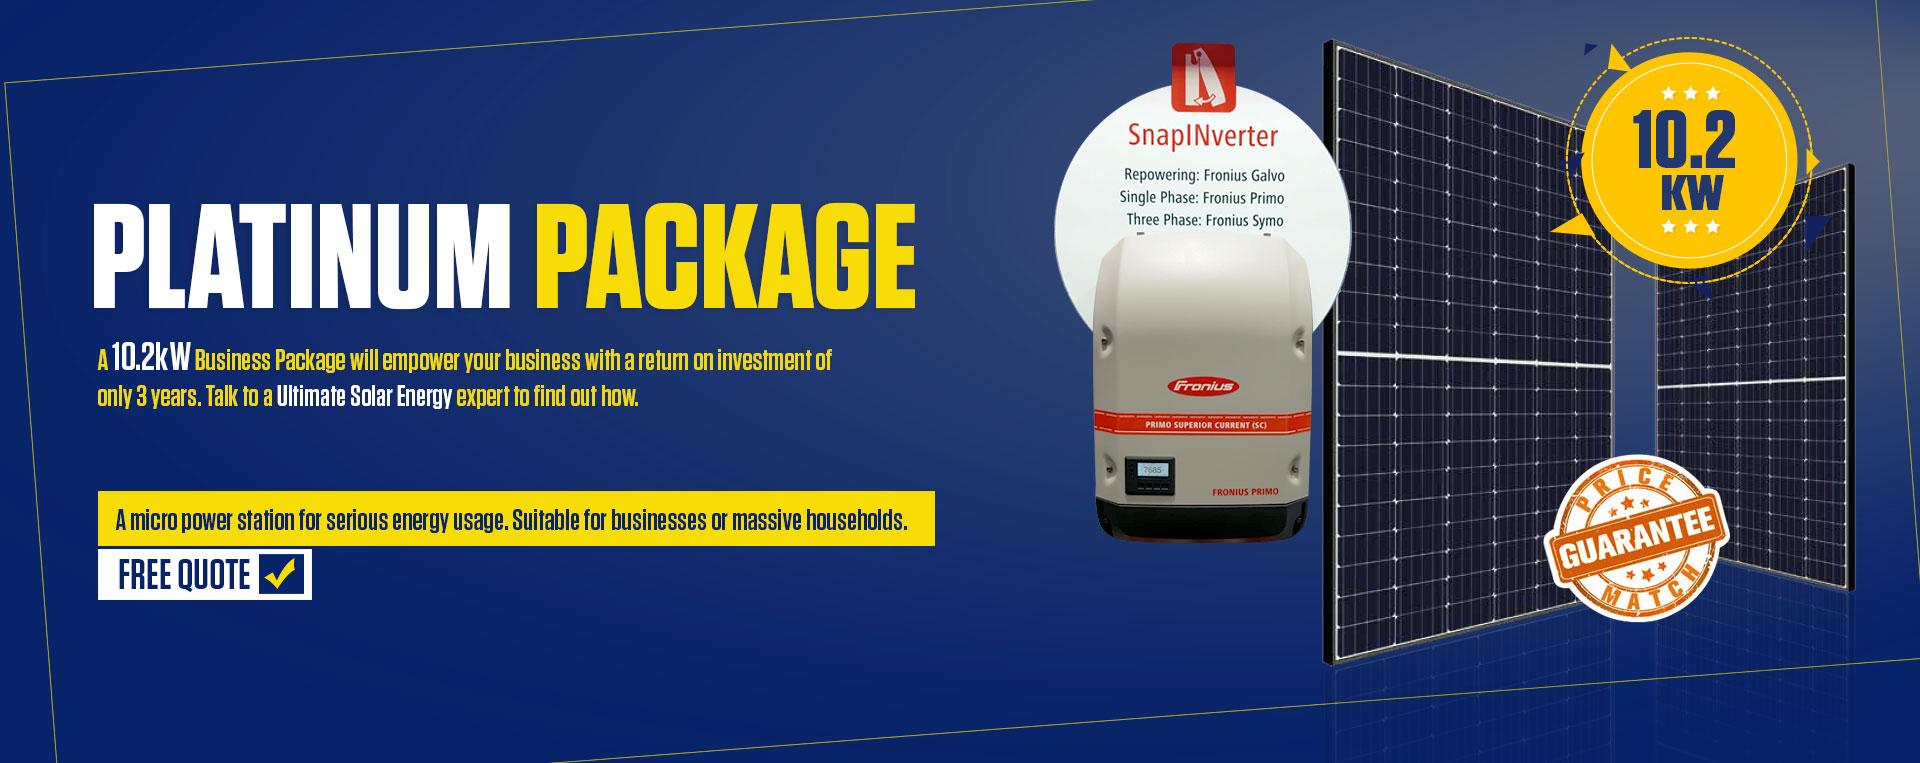 10.2 kW Business Package